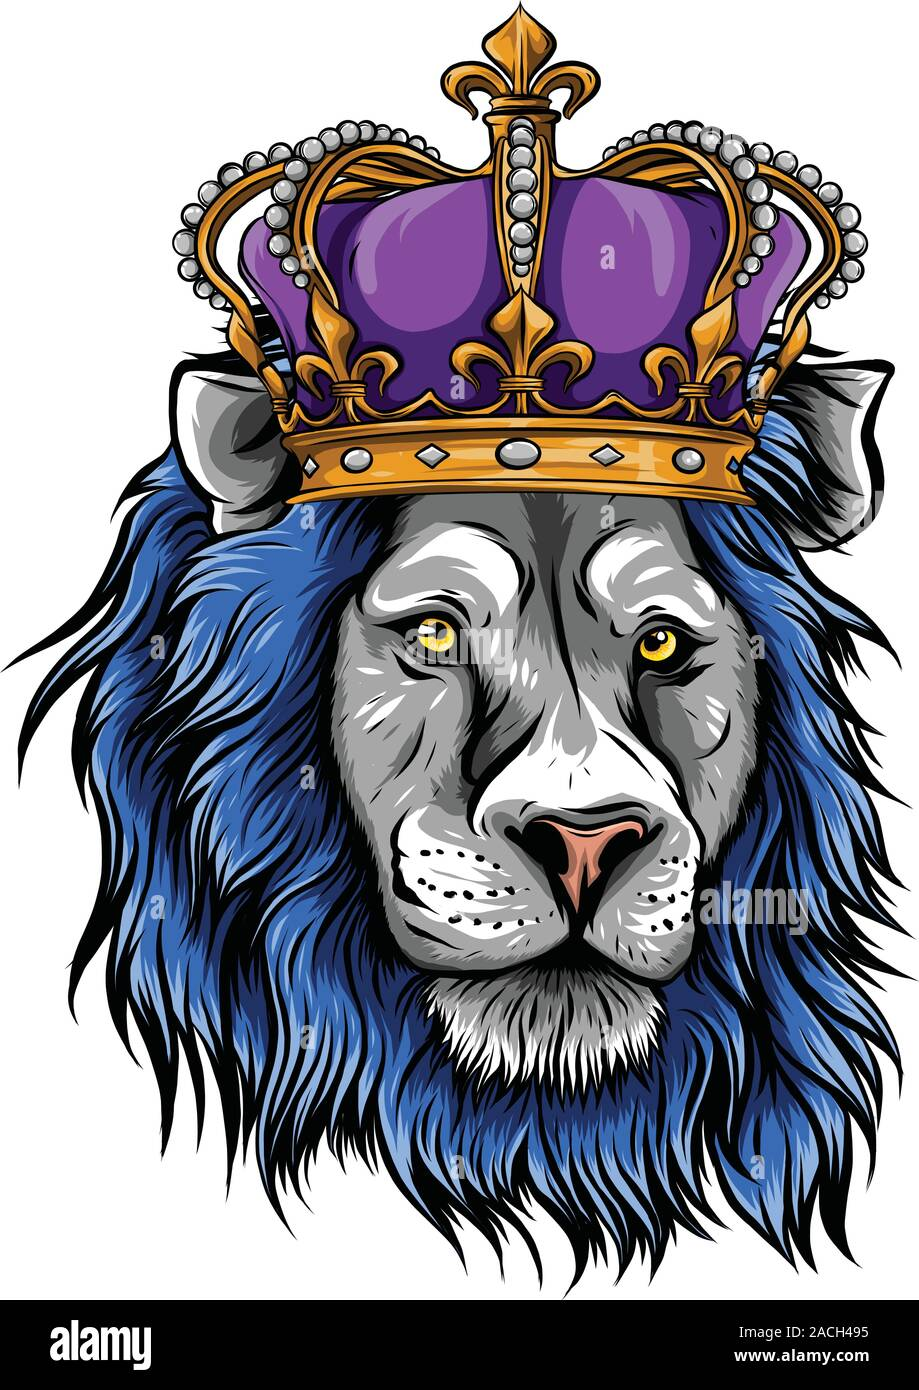 Vector Illustration The Lion King The Head Of A Lion In The Crown On A White Background Stock Vector Image Art Alamy Modern vector eps10 concept illustration design. https www alamy com vector illustration the lion king the head of a lion in the crown on a white background image334749441 html